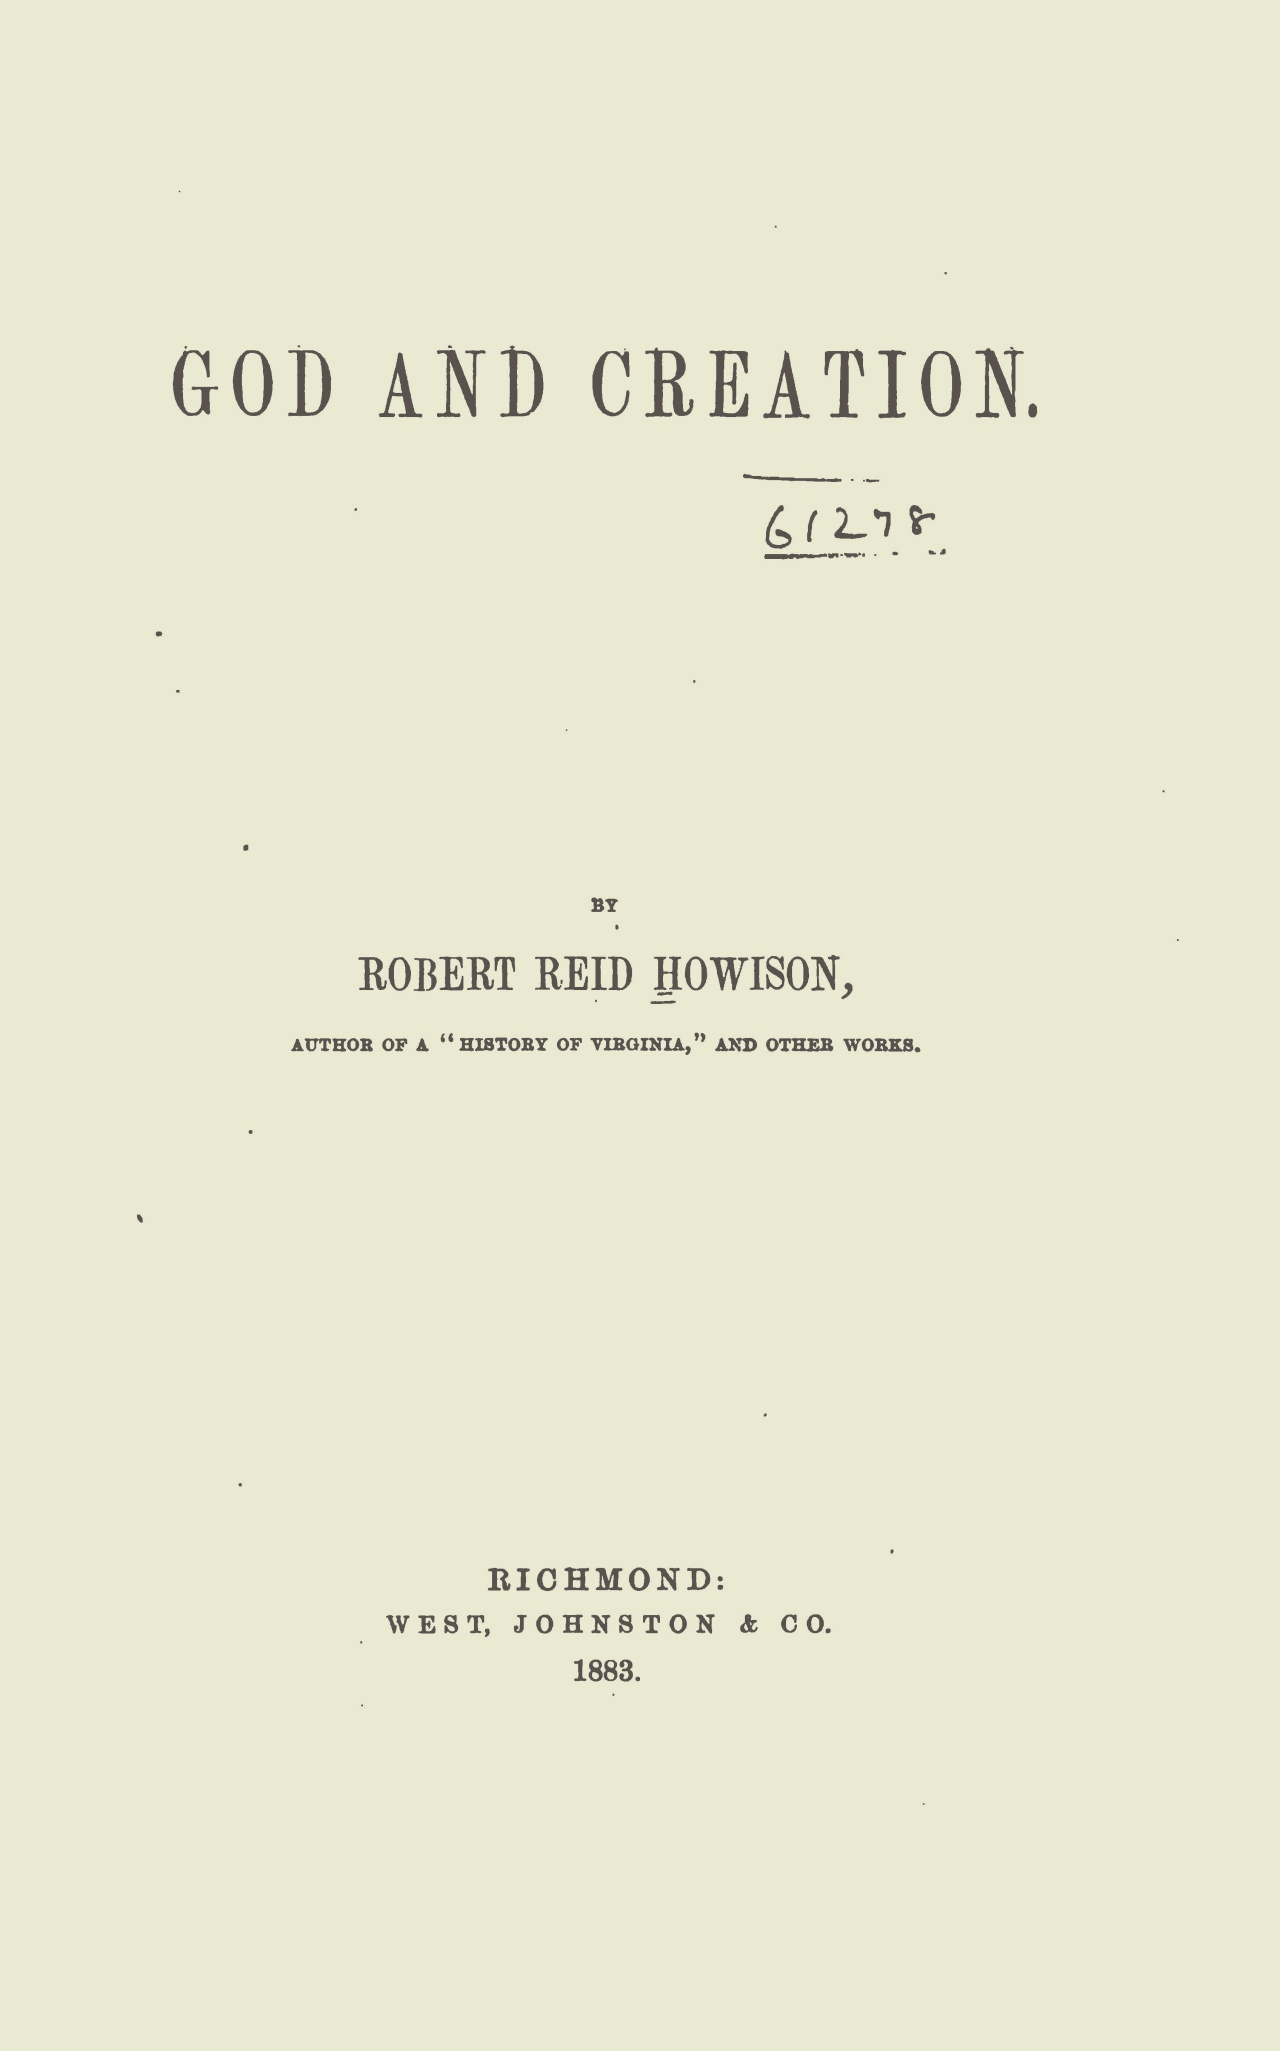 Howison, Robert Reid, God and Creation Title Page.jpg